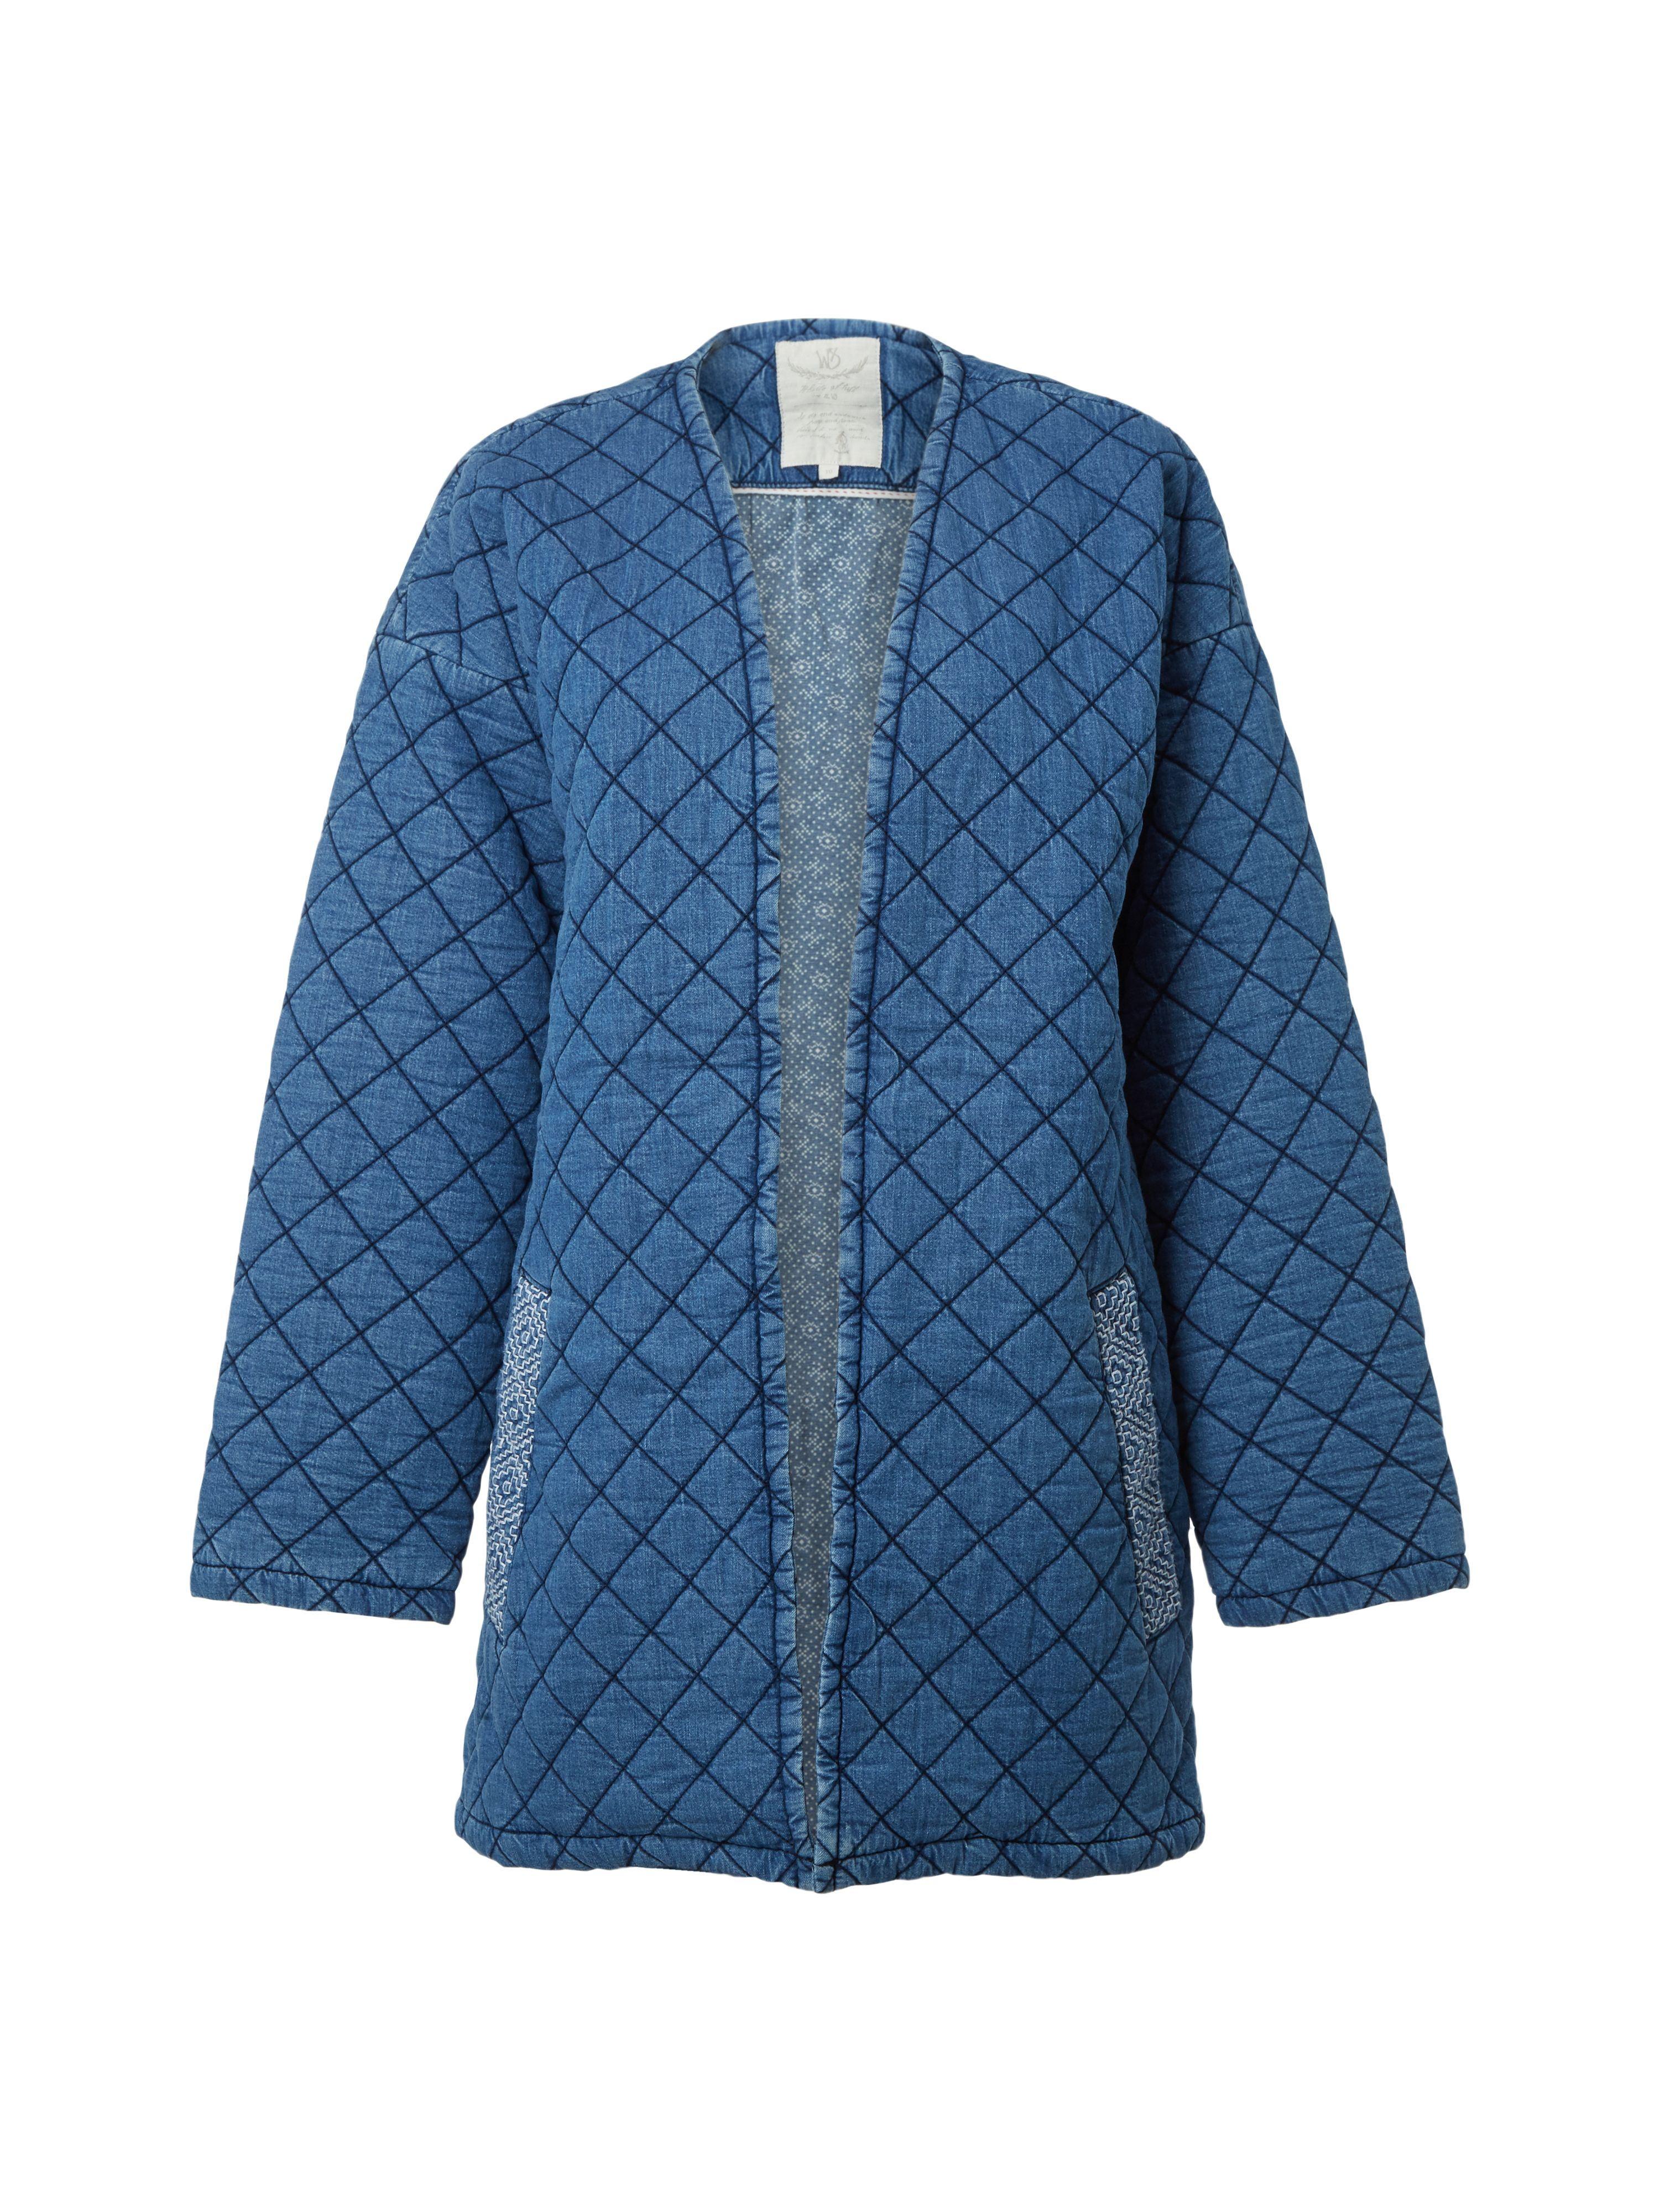 White Stuff Quilted Homespun Jacket, Blue